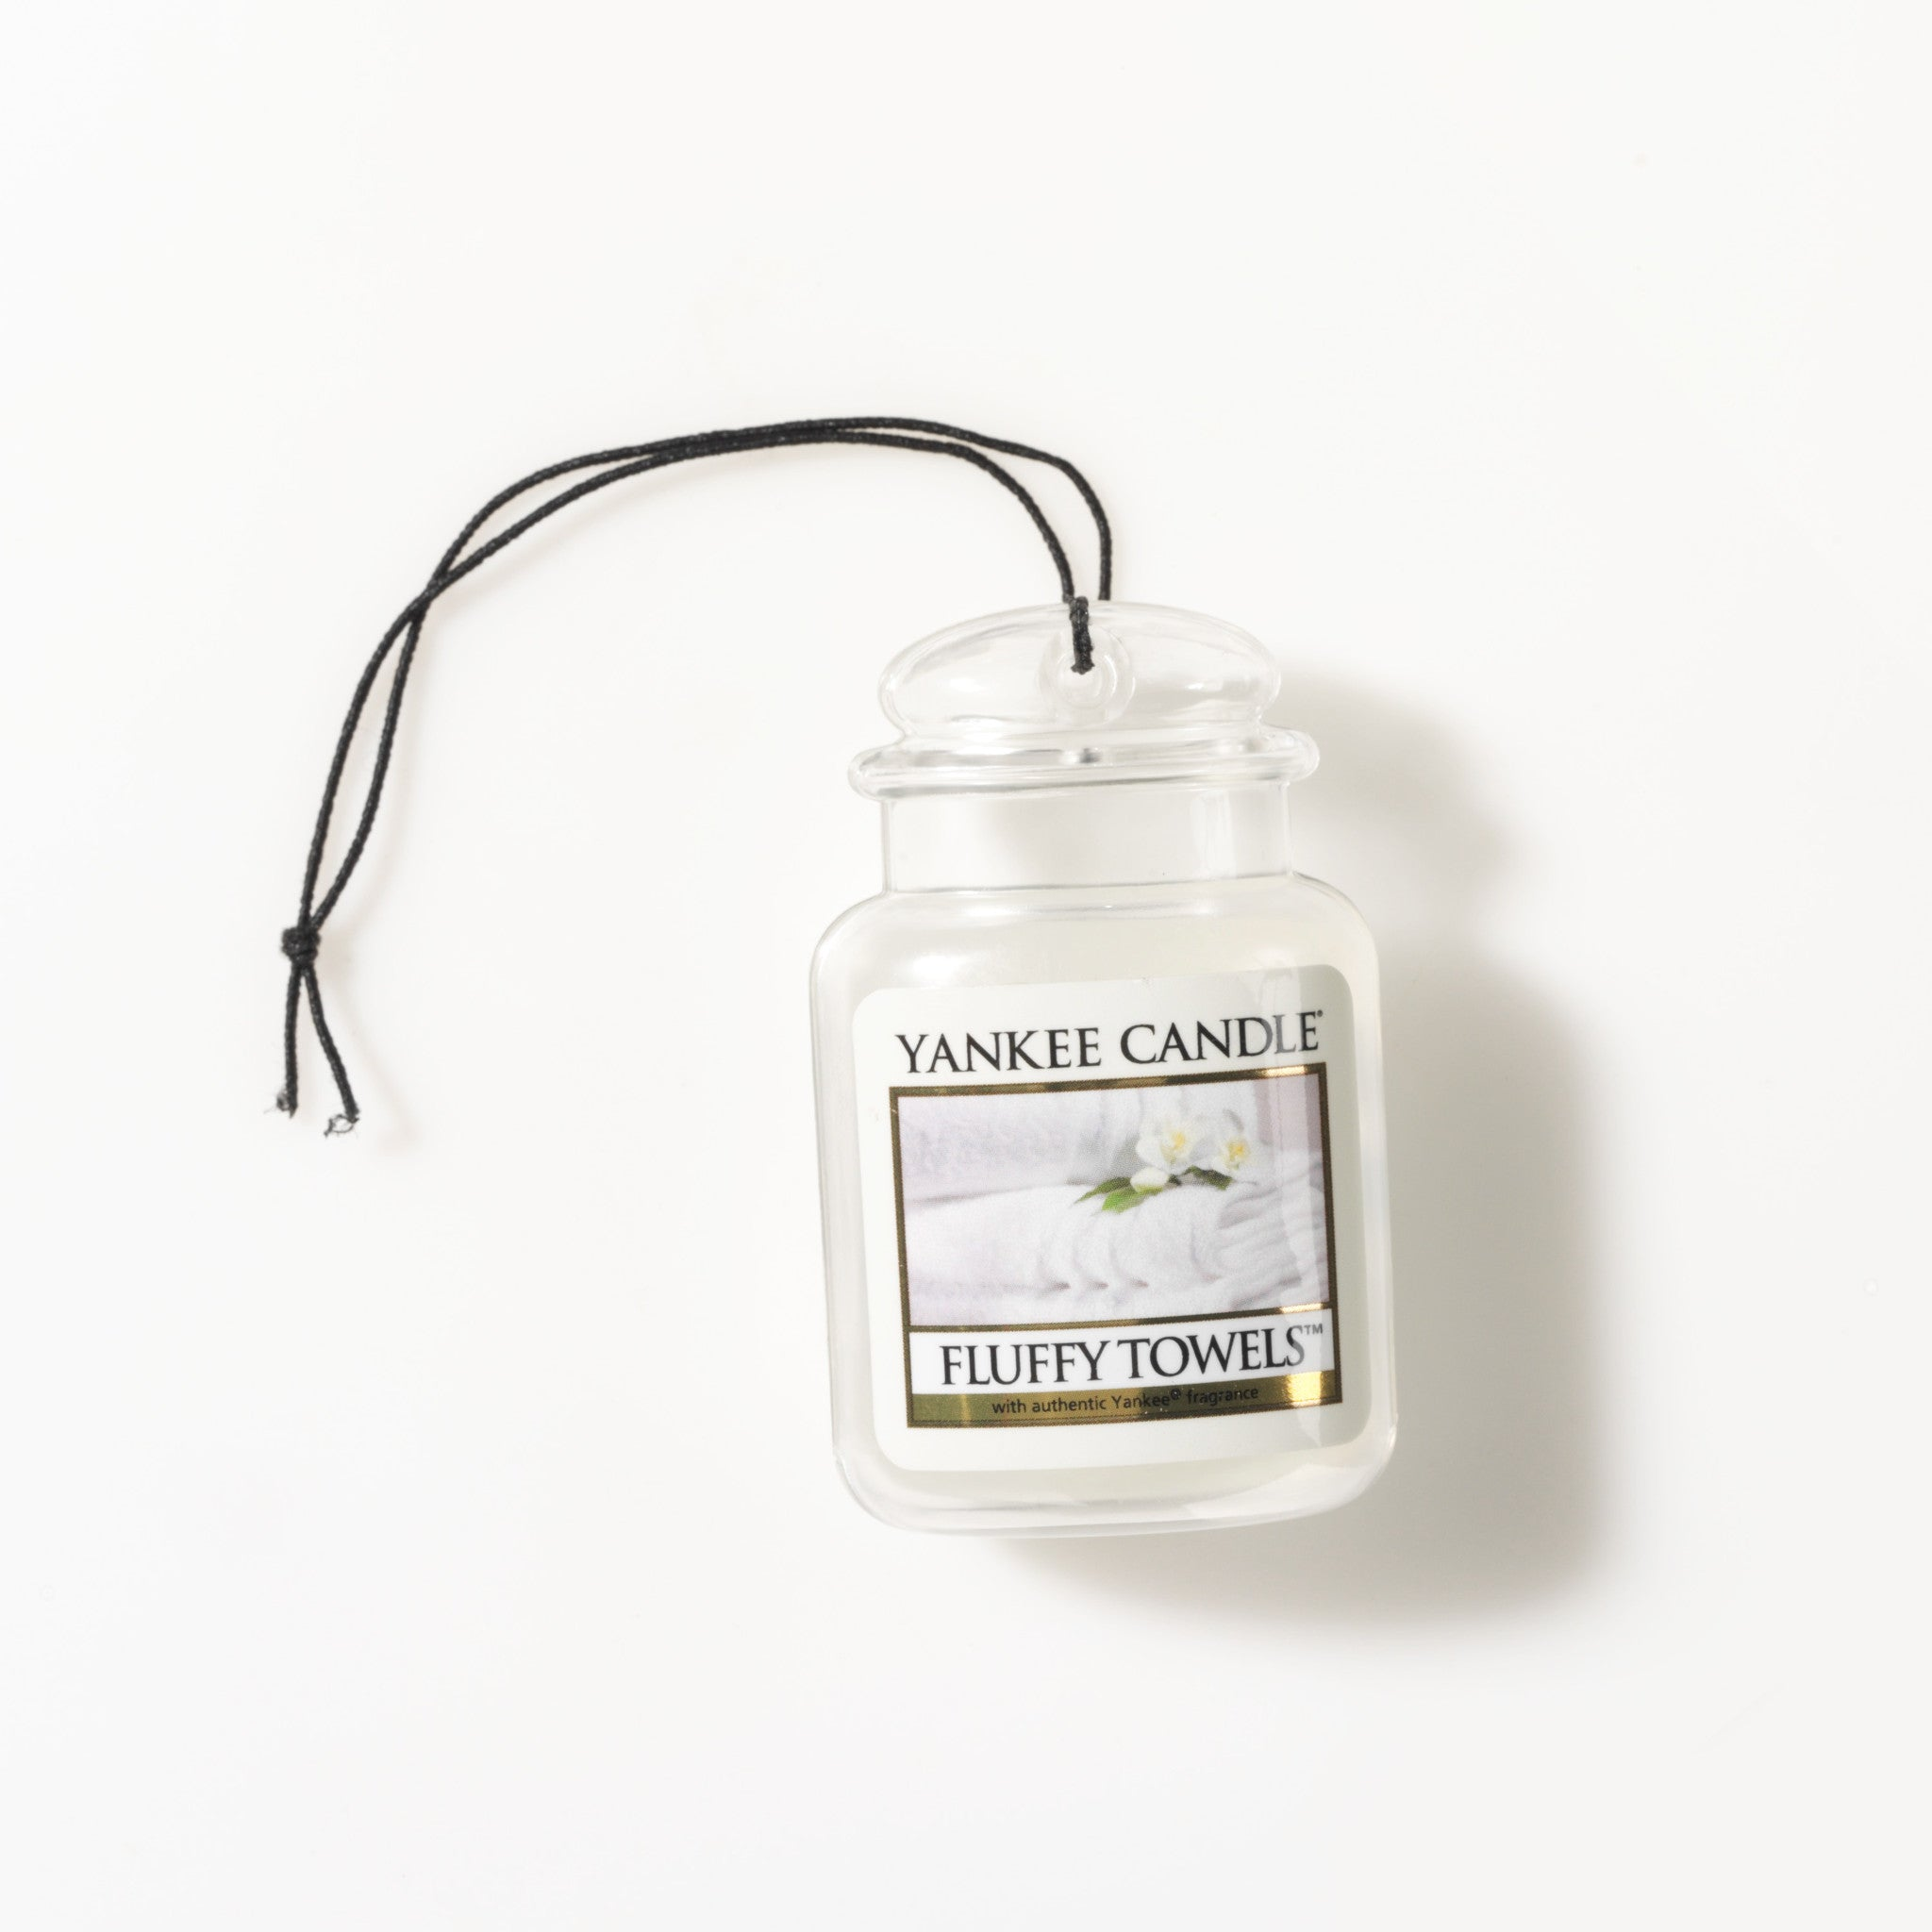 FLUFFY TOWELS -Yankee Candle- Car Jar Ultimate